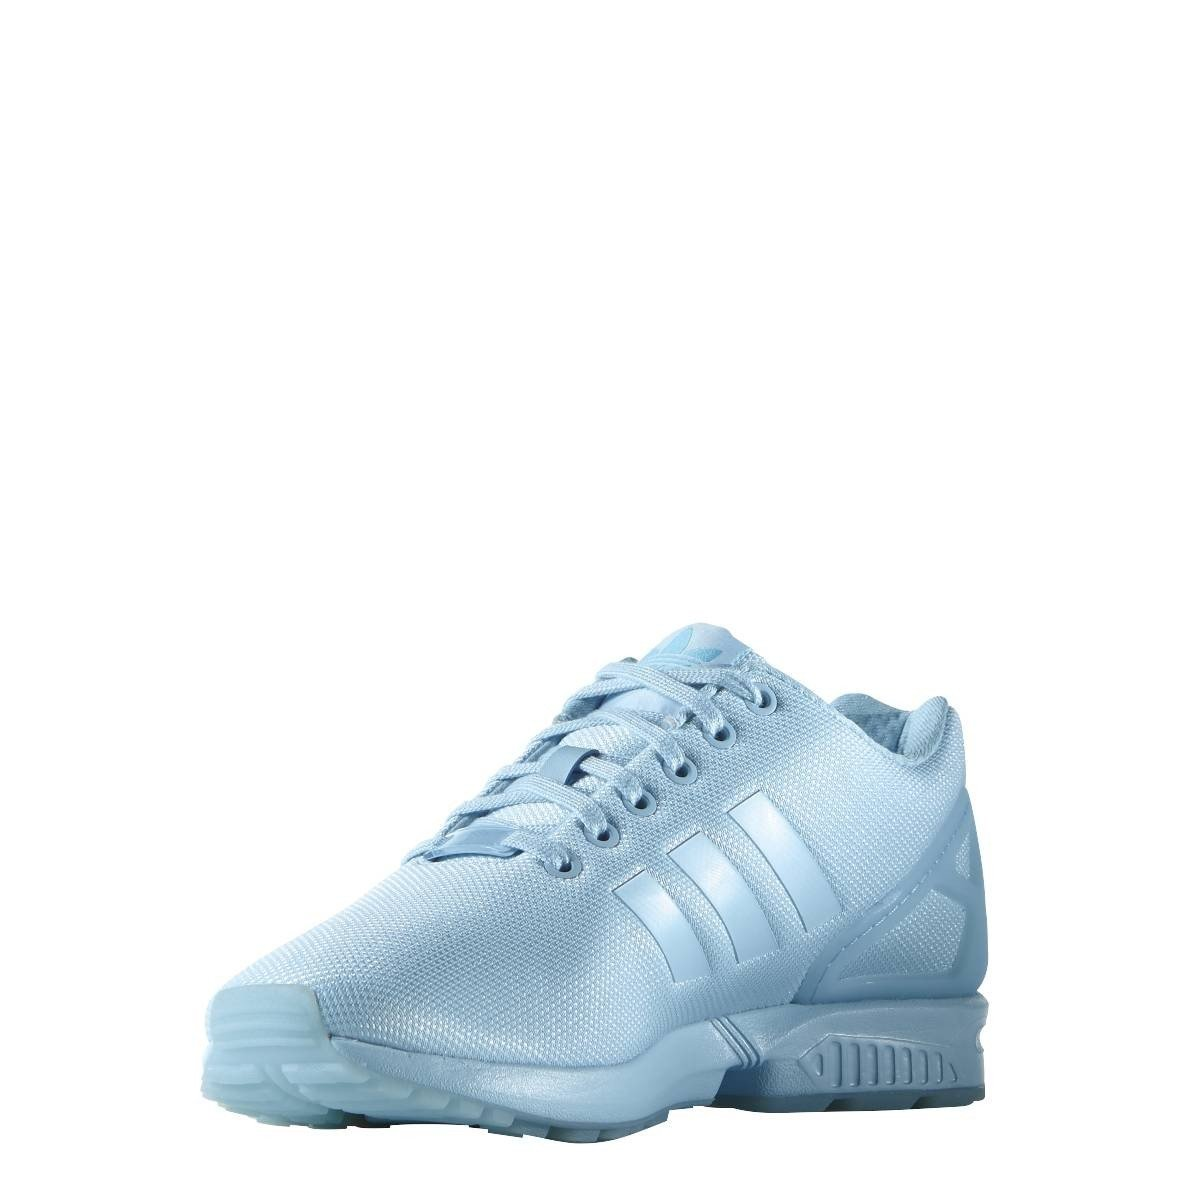 outlet store 6a9a2 27ada adidas ZX Flux, Men's Trainers